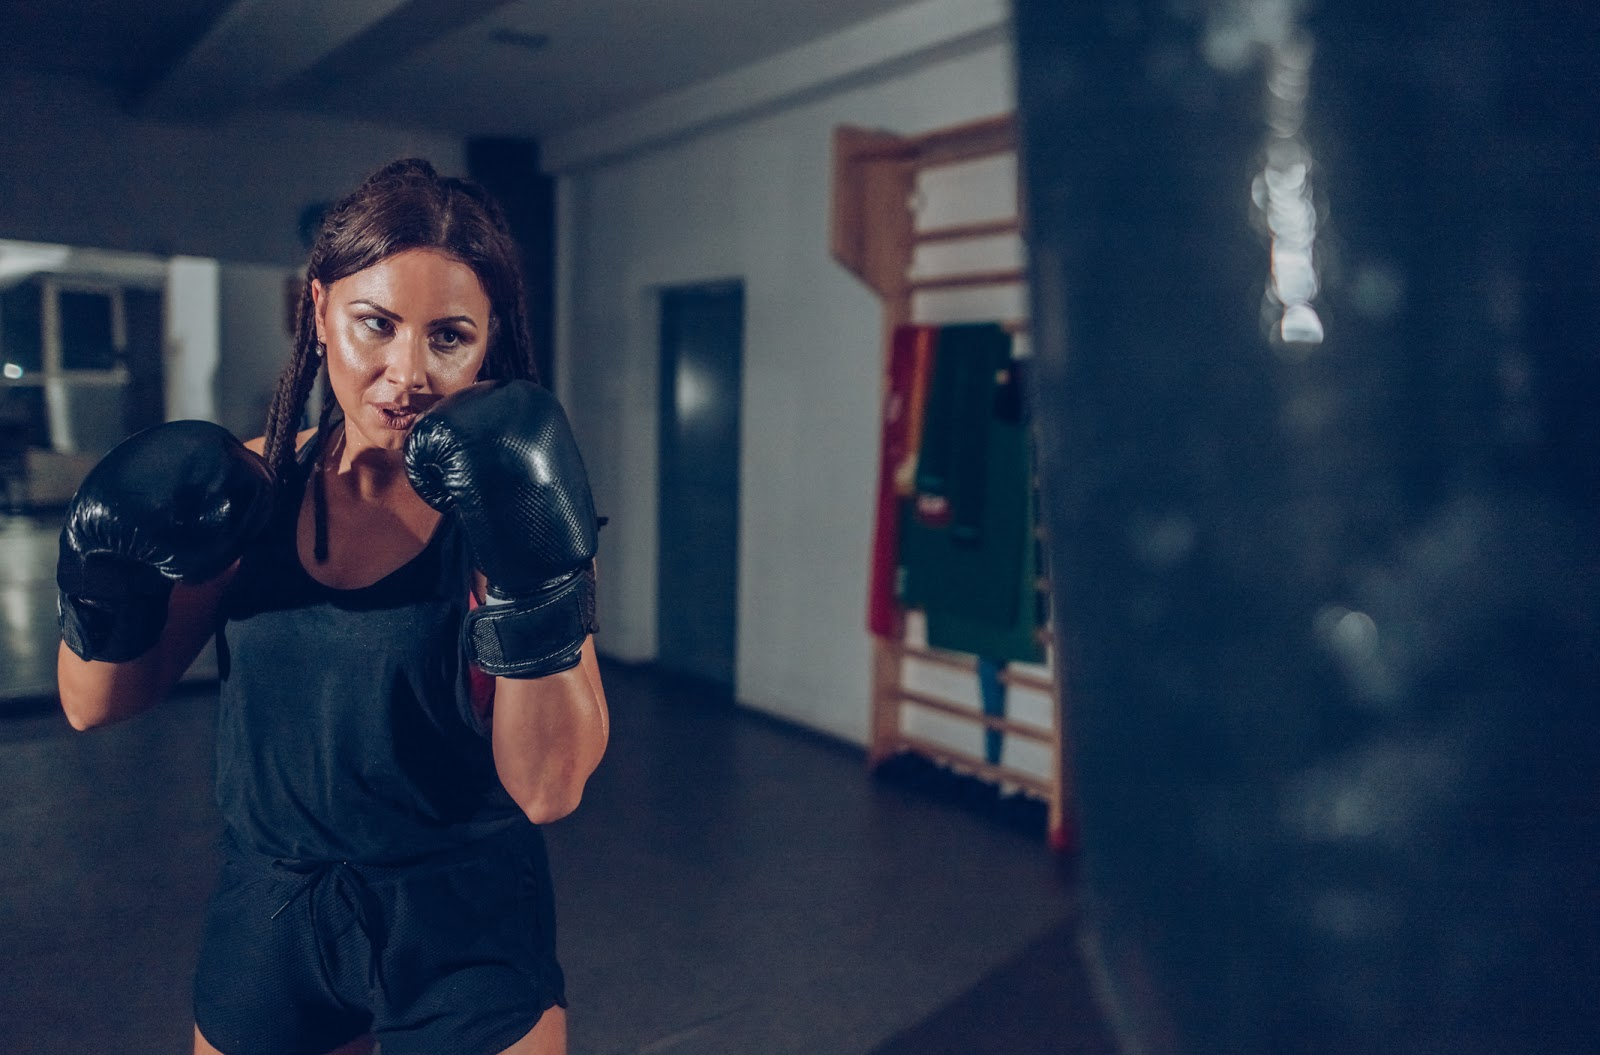 Determined, sweaty woman with black boxing gloves and braids working out on a black heavy bag.